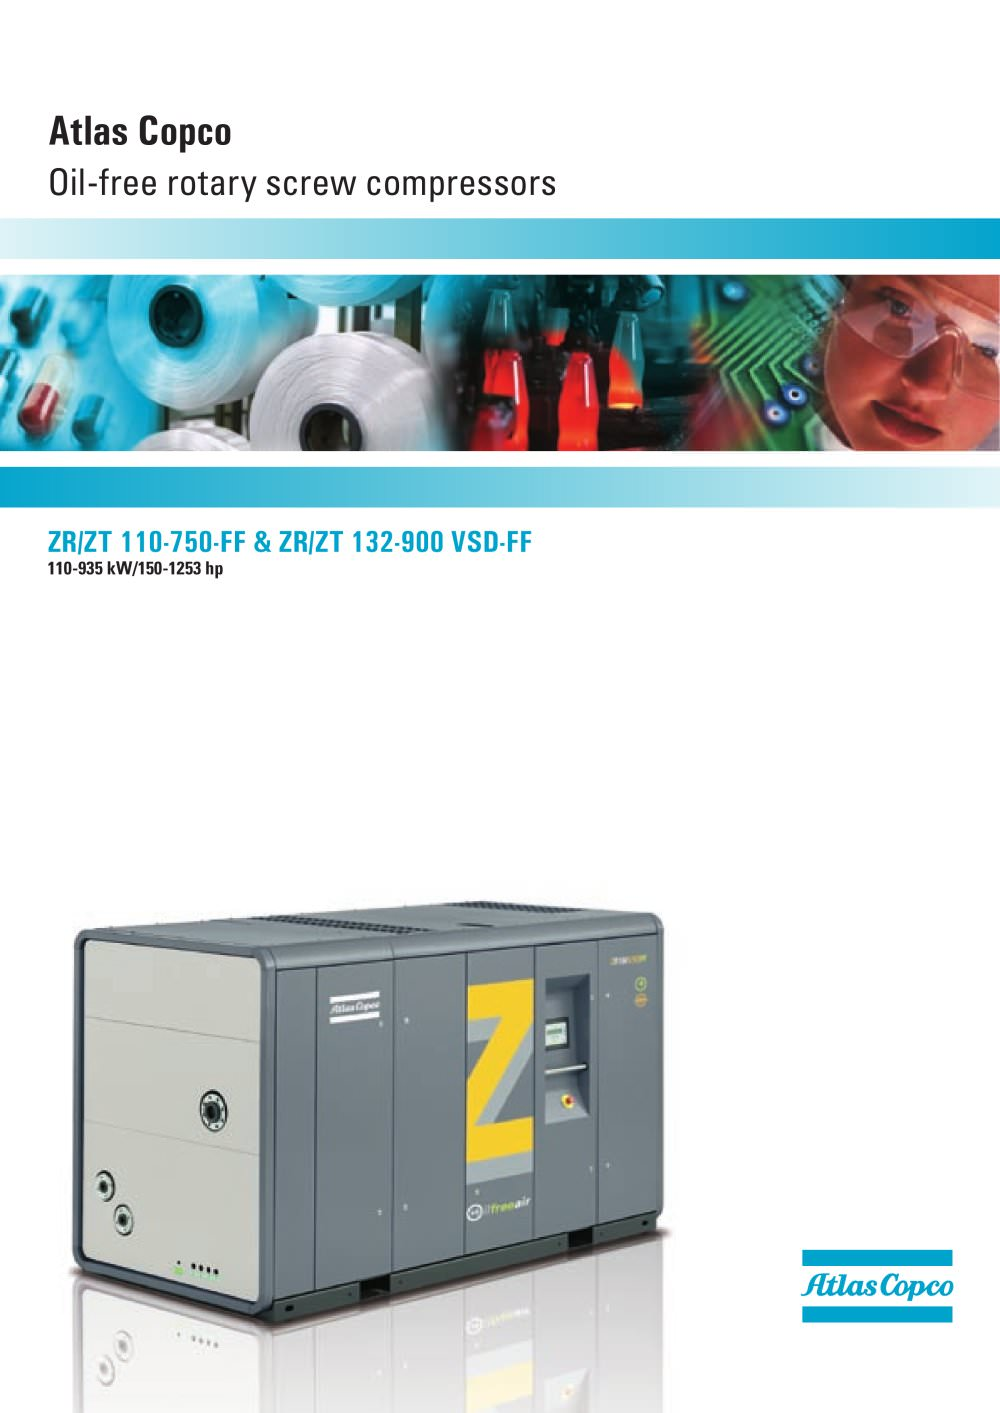 Atlas Copco Oil-free rotary screw compressors 110-935 kW/150-1253 hp - 1 /  24 Pages